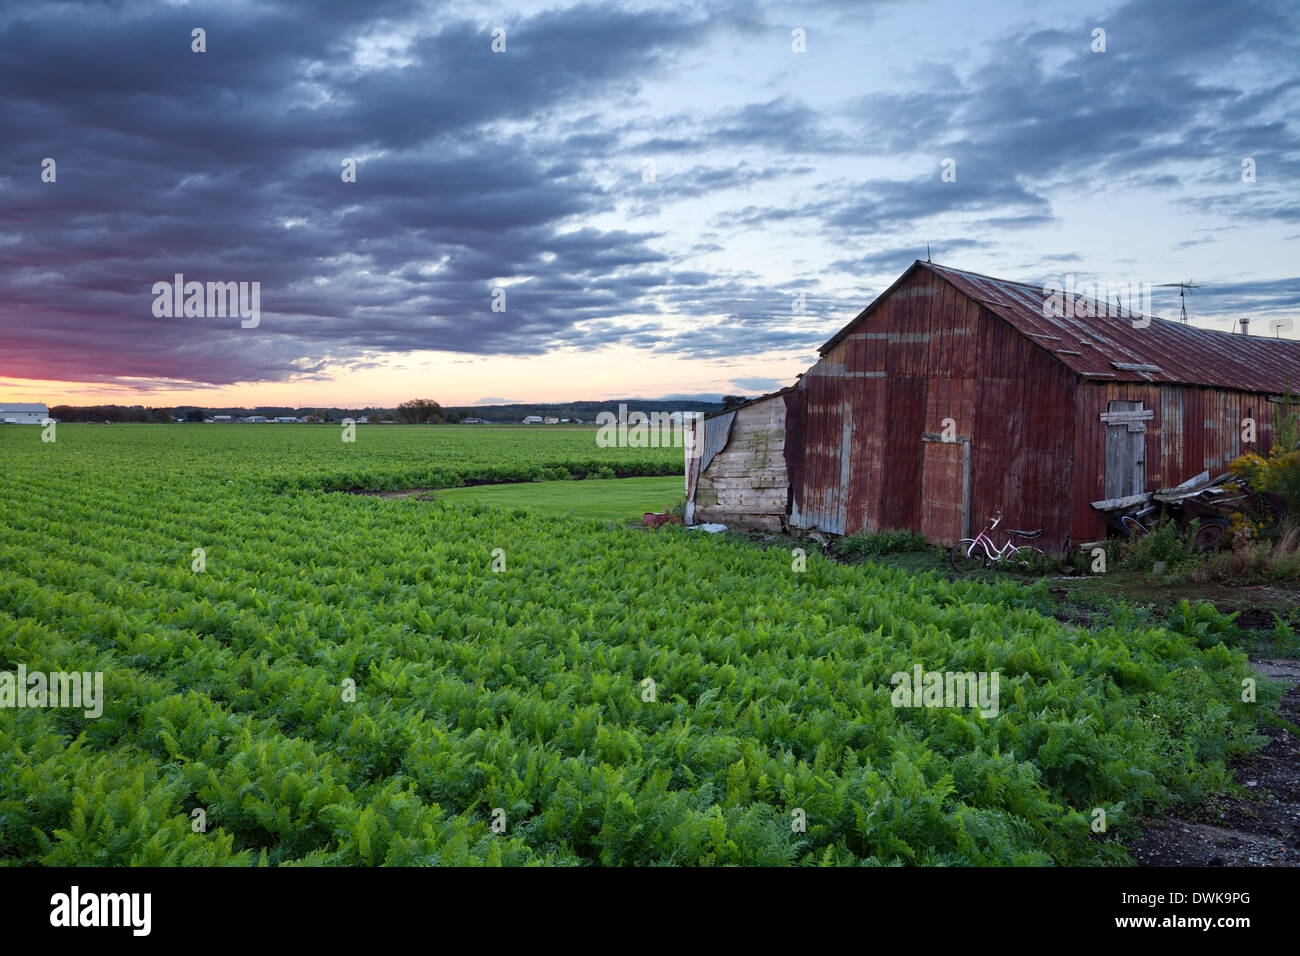 A dilapidated shed sits next to a field of mature carrots in the Holland Marsh, Bradford West Gwillimbury, Ontario, Canada. - Stock Image